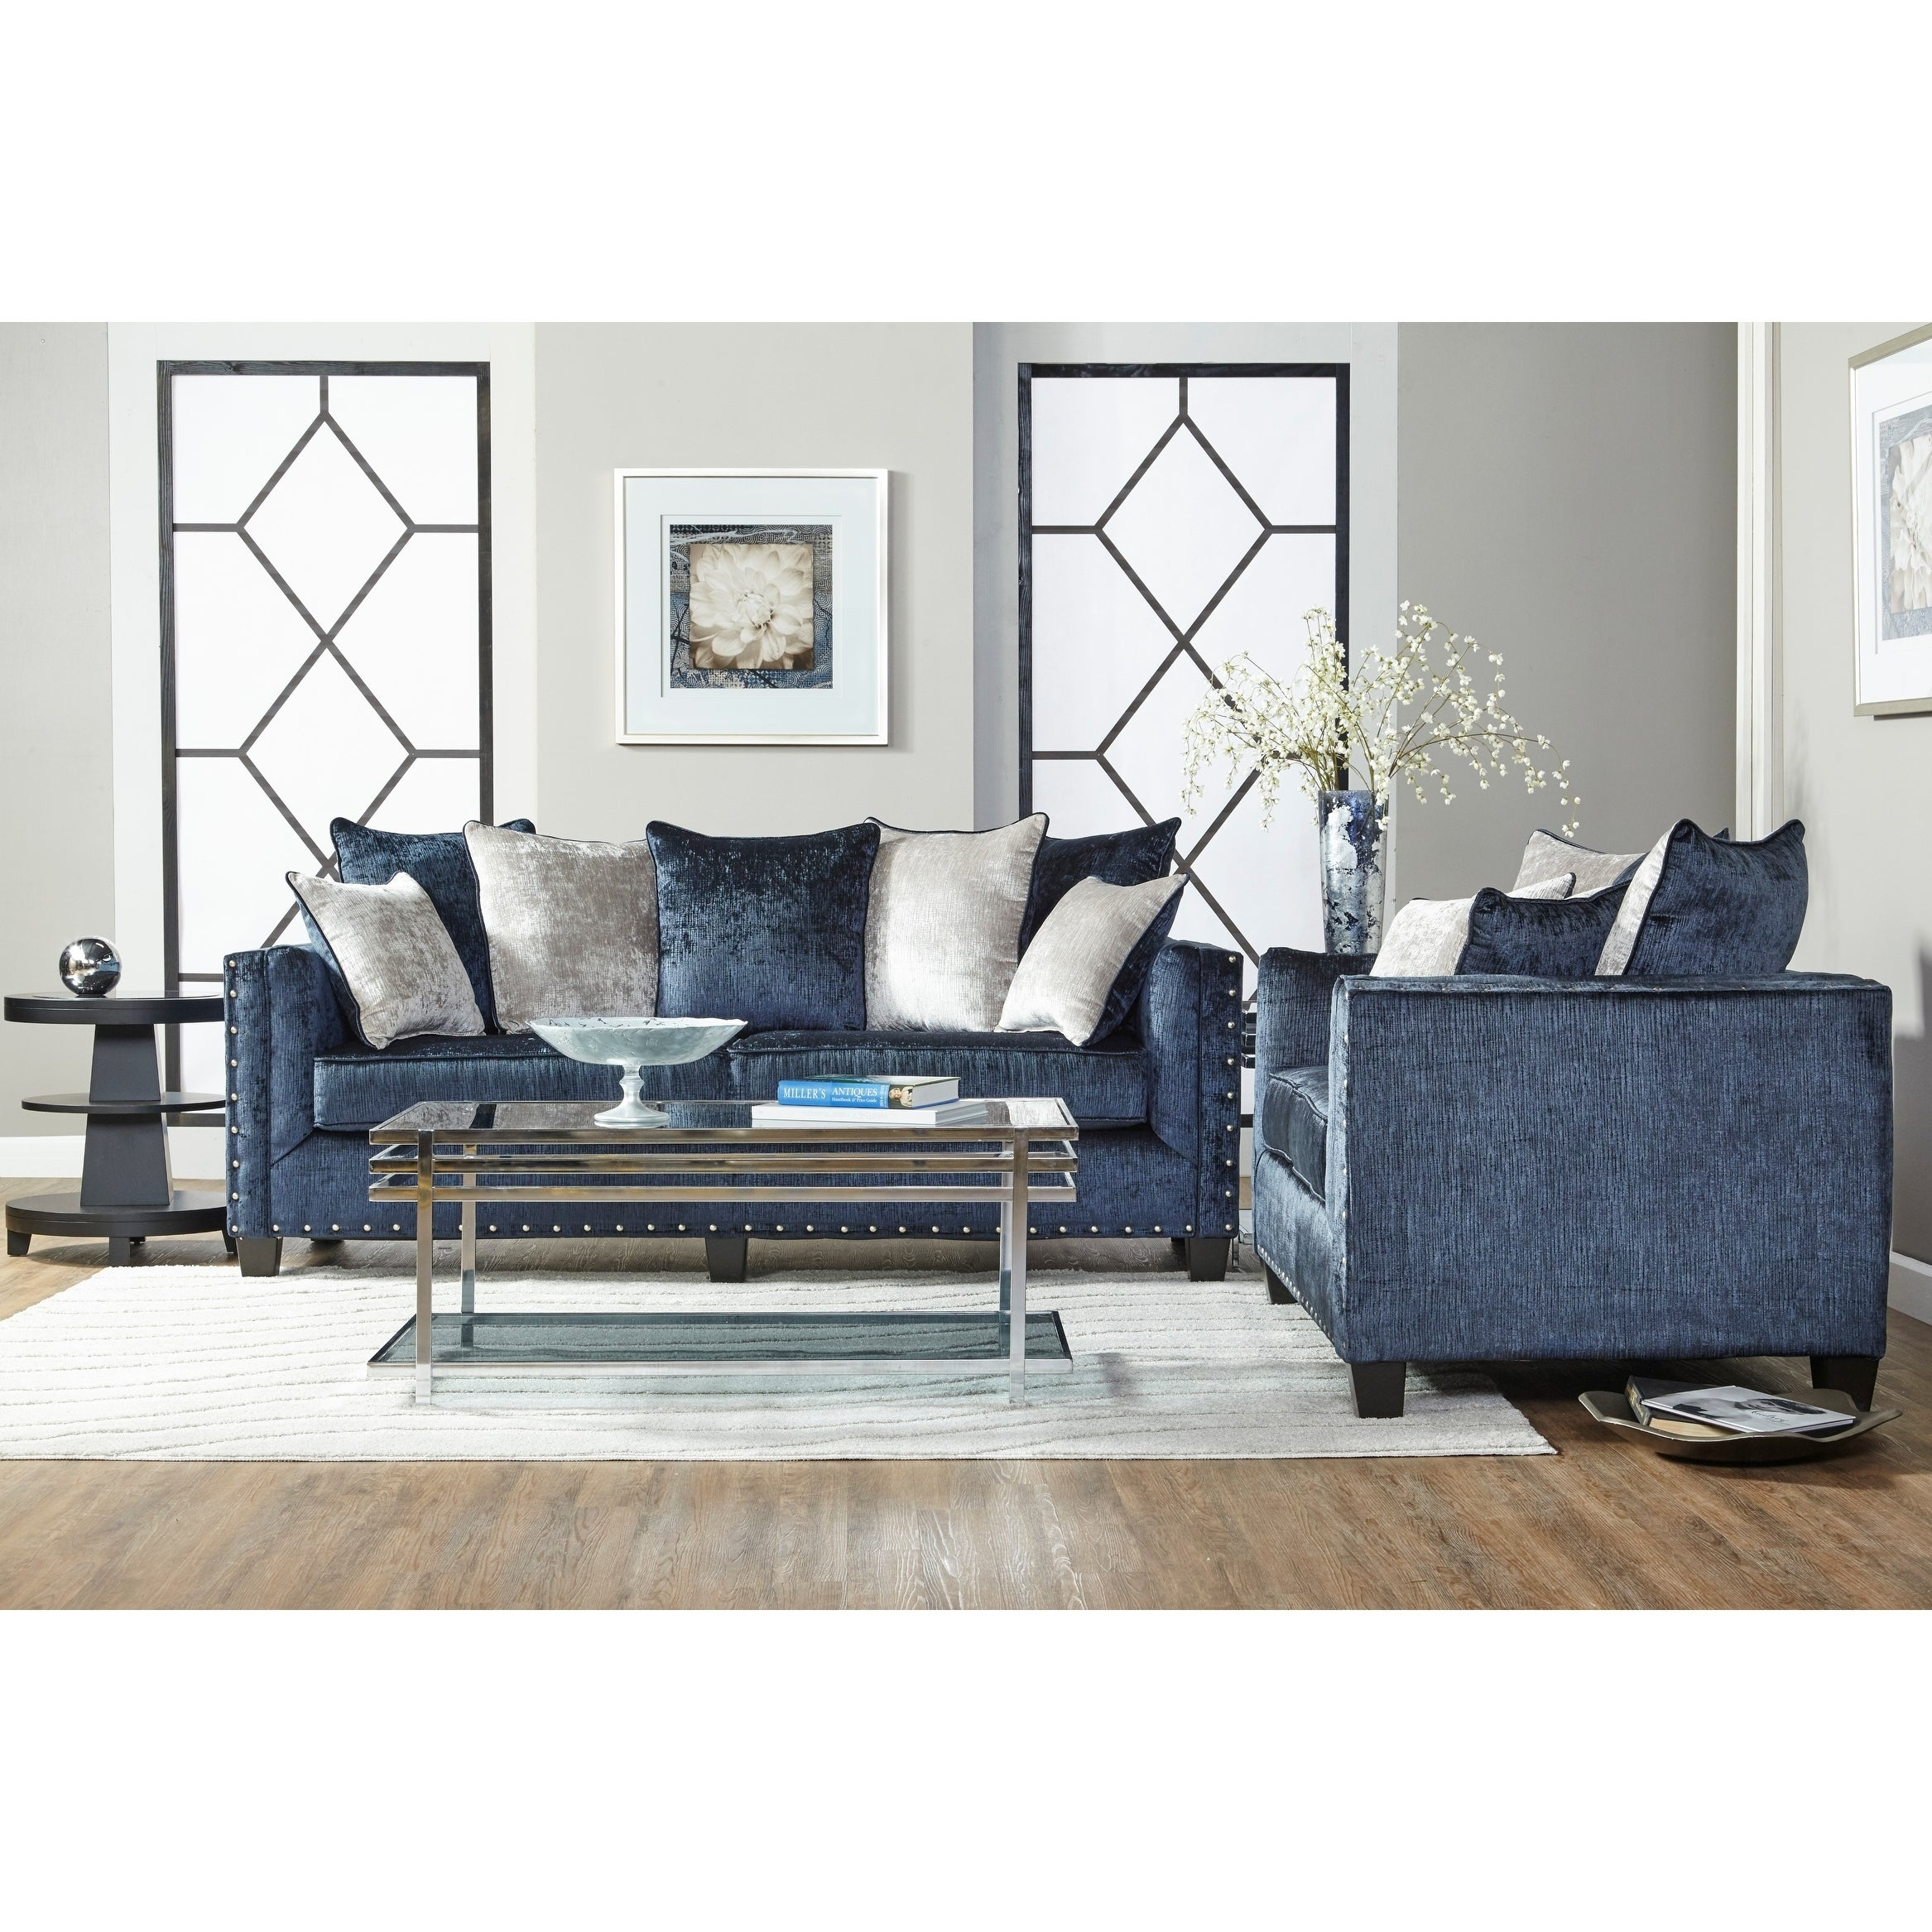 Shop Ikat Grand Blue Velvet Sofa Set With Nail Head Accent   Free Shipping  Today   Overstock.com   22723405